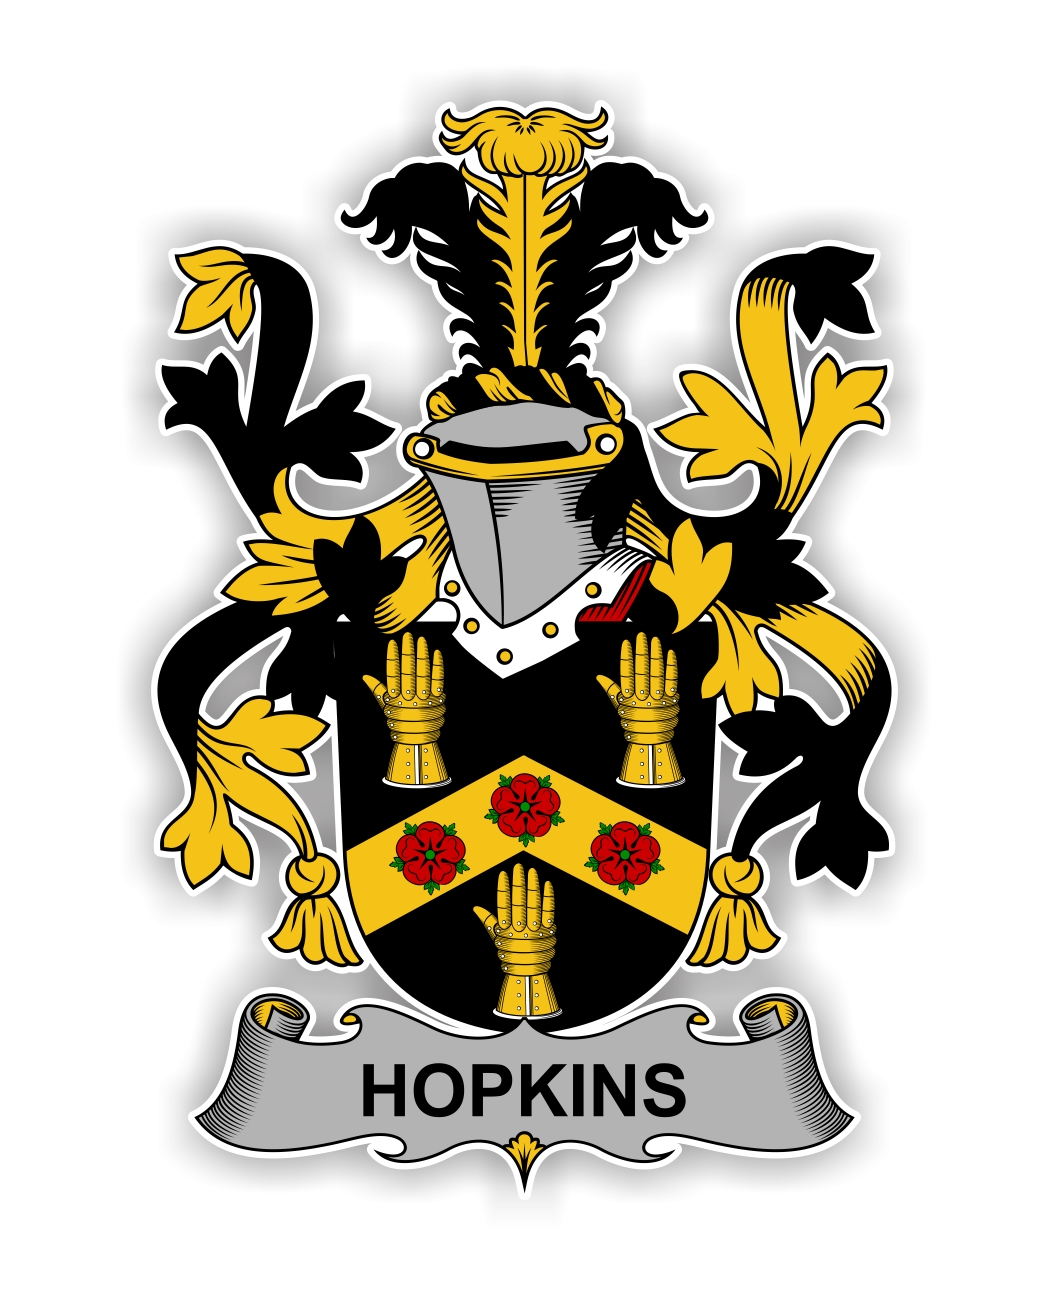 Hopkins Family Crest Vinyl Die Cut Decal Sticker 4